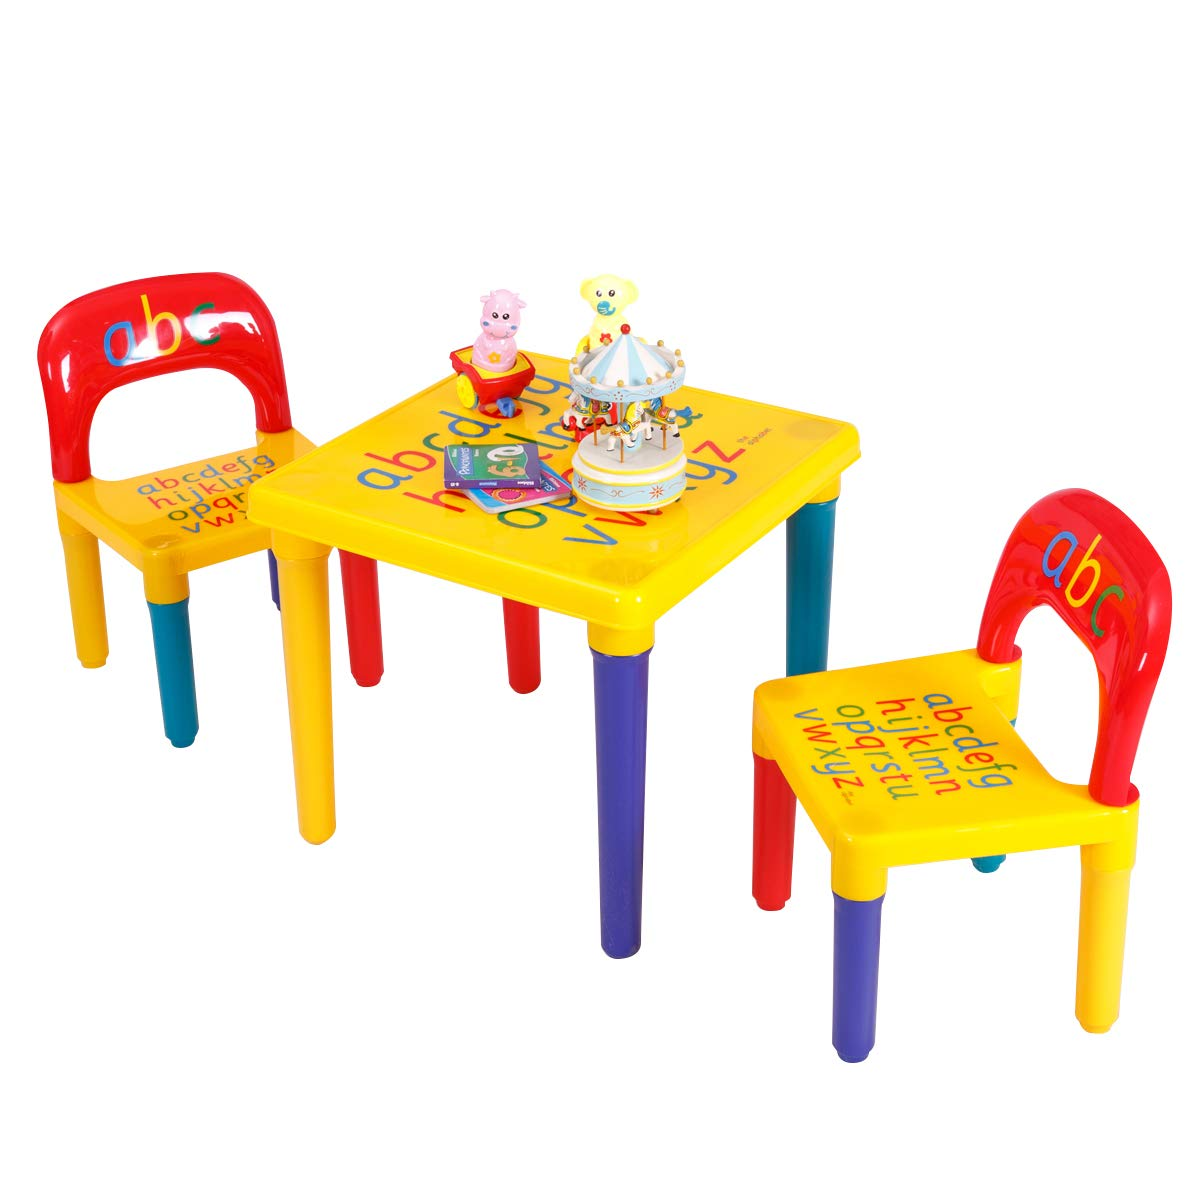 Costzon Kids Table and 2 Chair Set, Alphabet Design, Specially-Designed Kiddie-Sized Furniture, Strong Bearing Capacity, Lightweight, Learn The Letters While Playing, Gift for Toddler Boys and Girls by Costzon